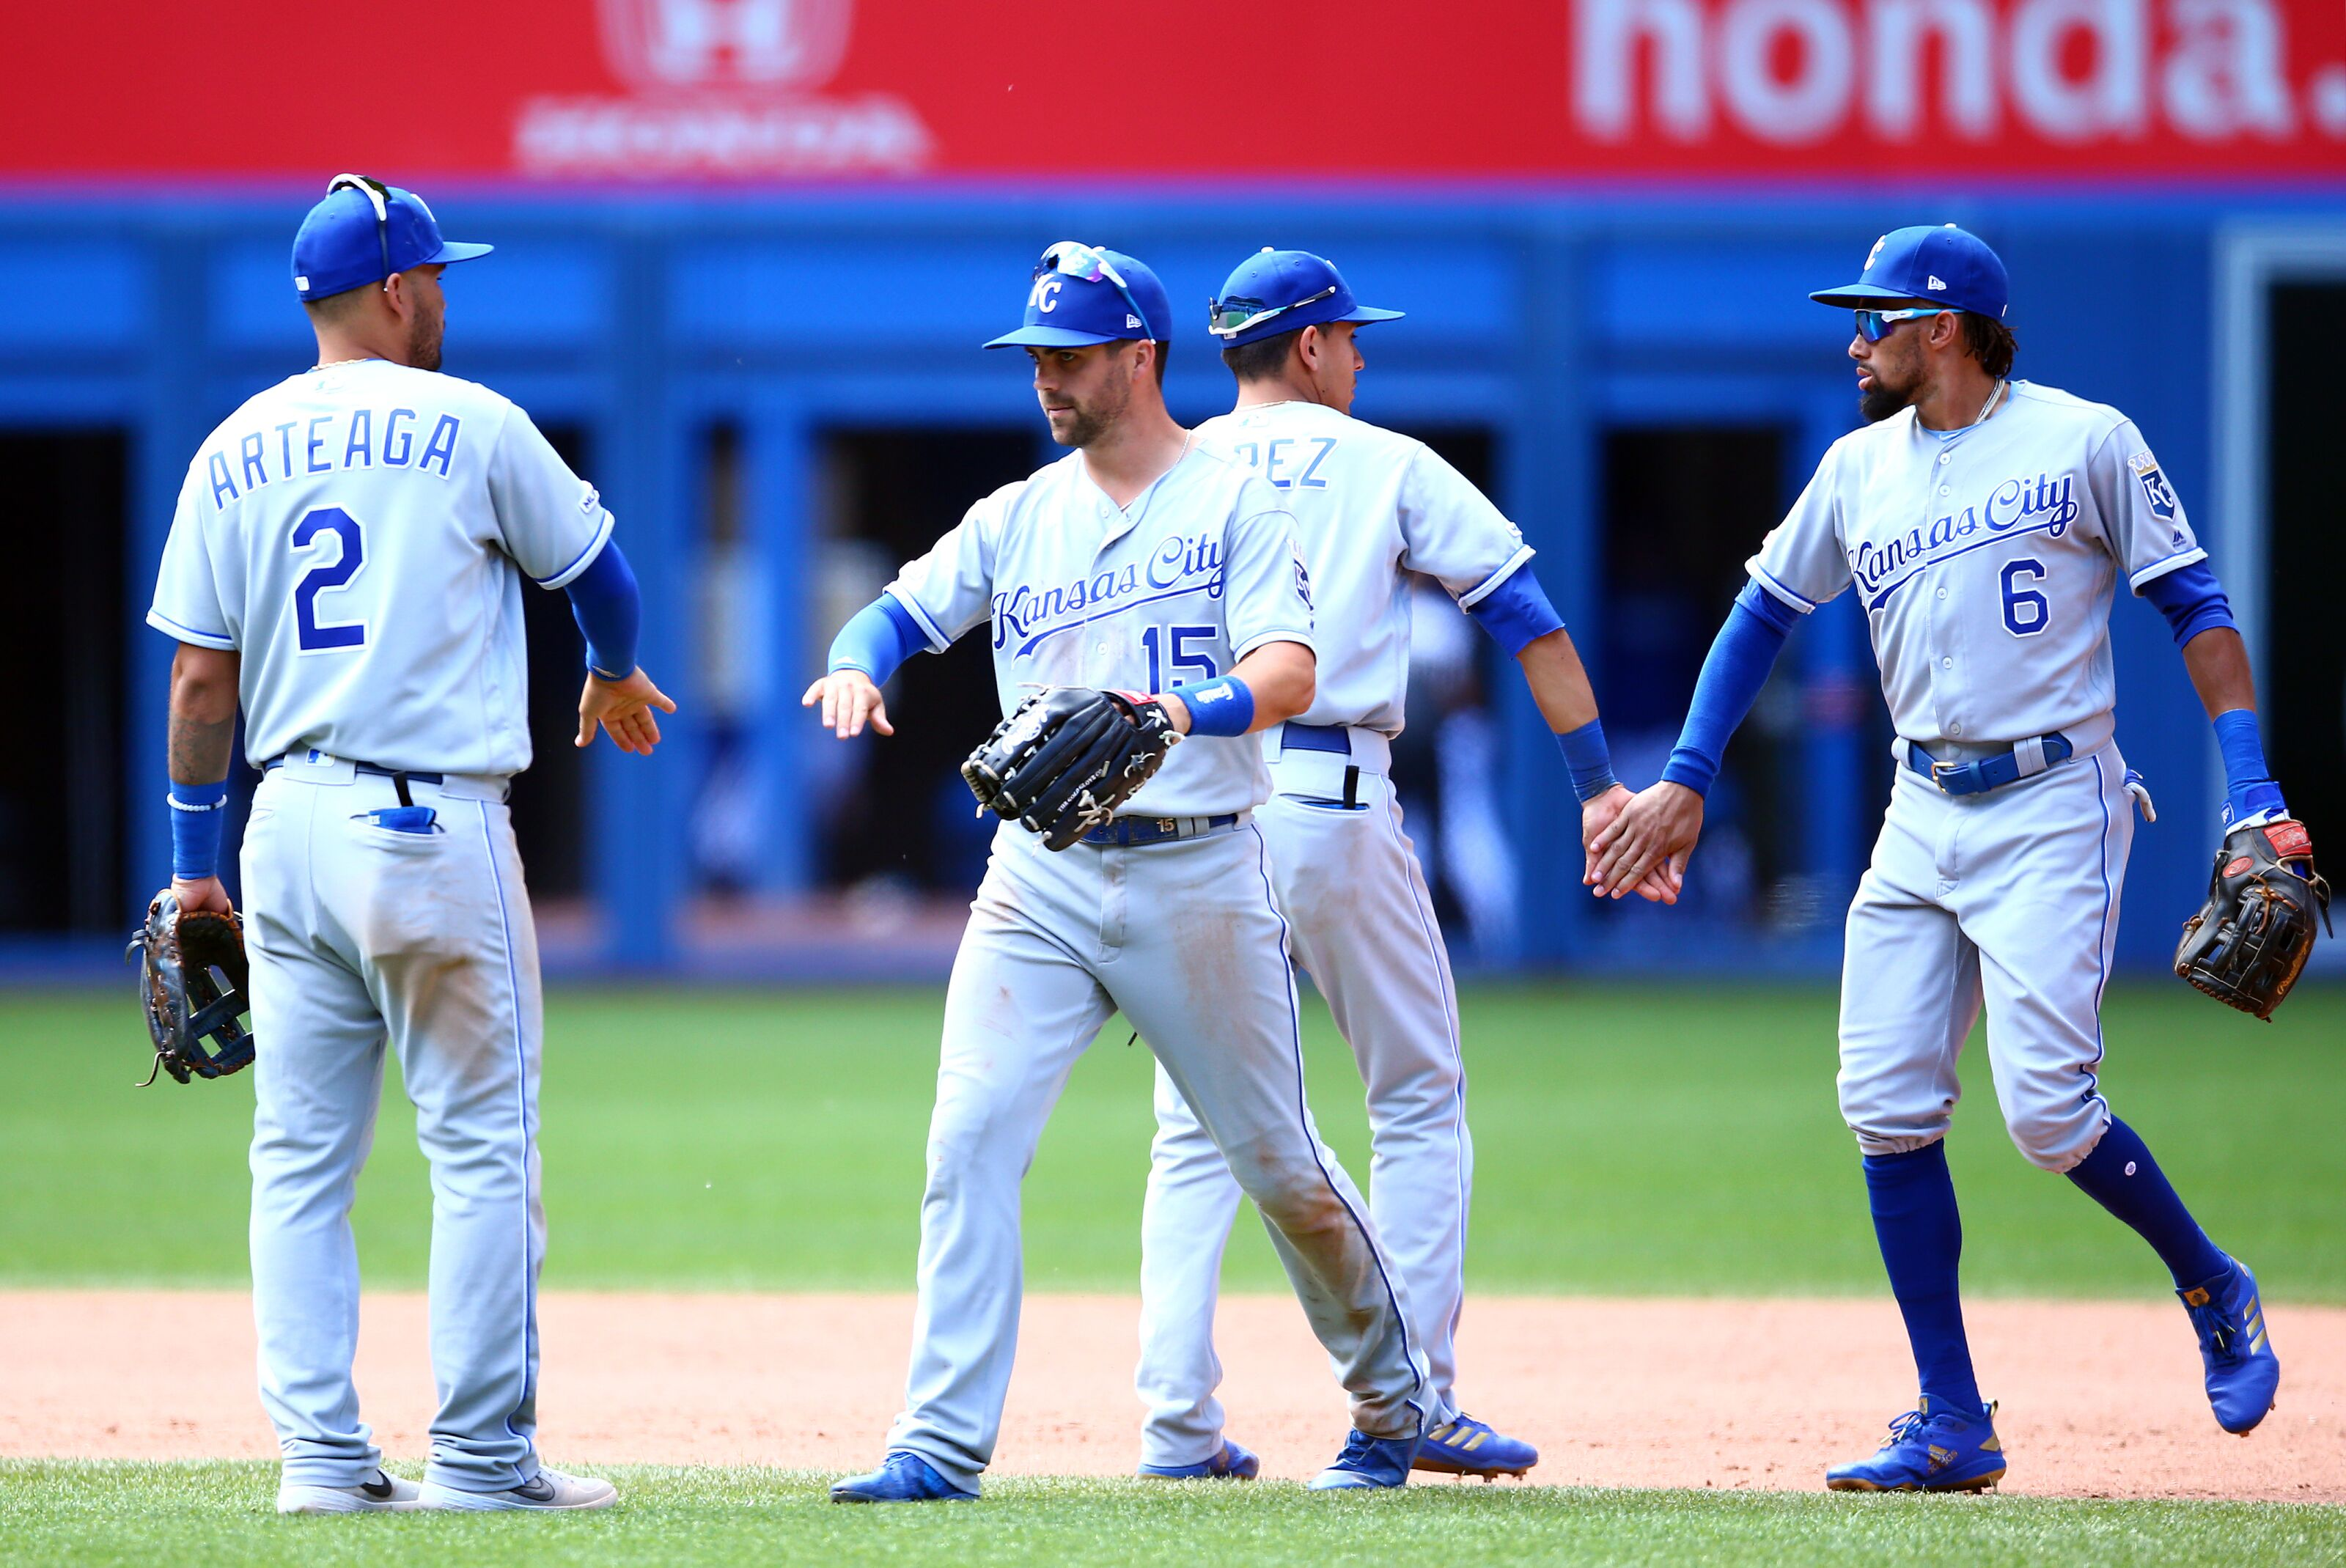 Kansas City Royals: Young players need to follow Whit Merrifield's lead